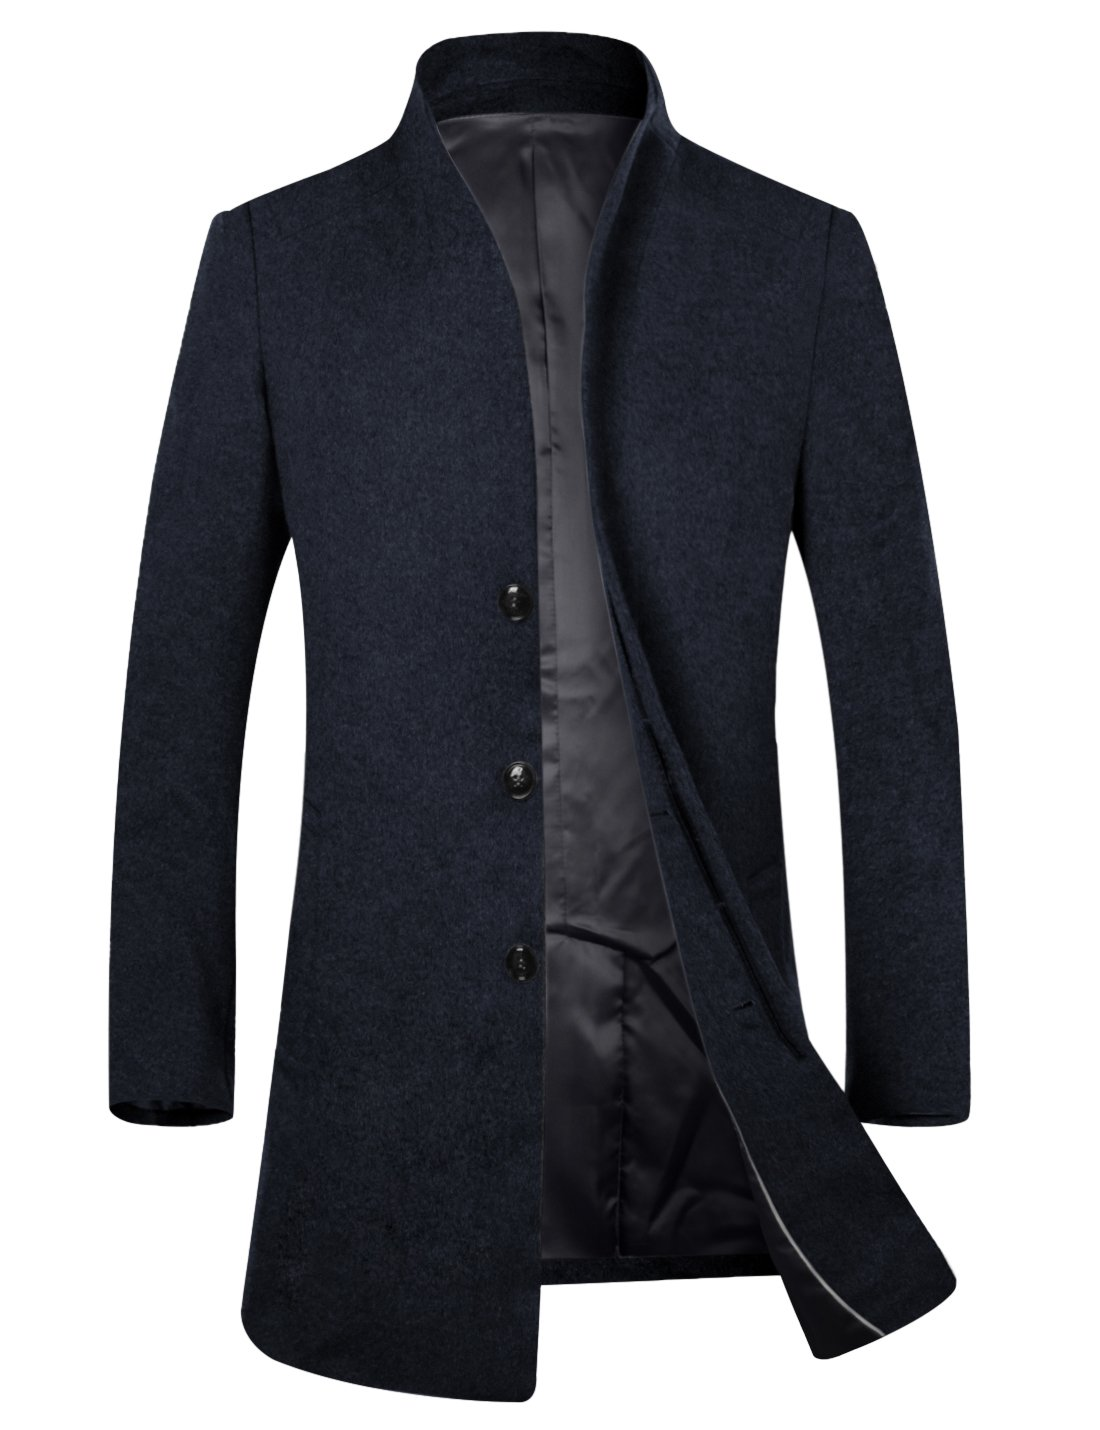 APTRO Men's Wool French Front Slim Fit Long Business Coat 1681 DZDY Navy XL by APTRO